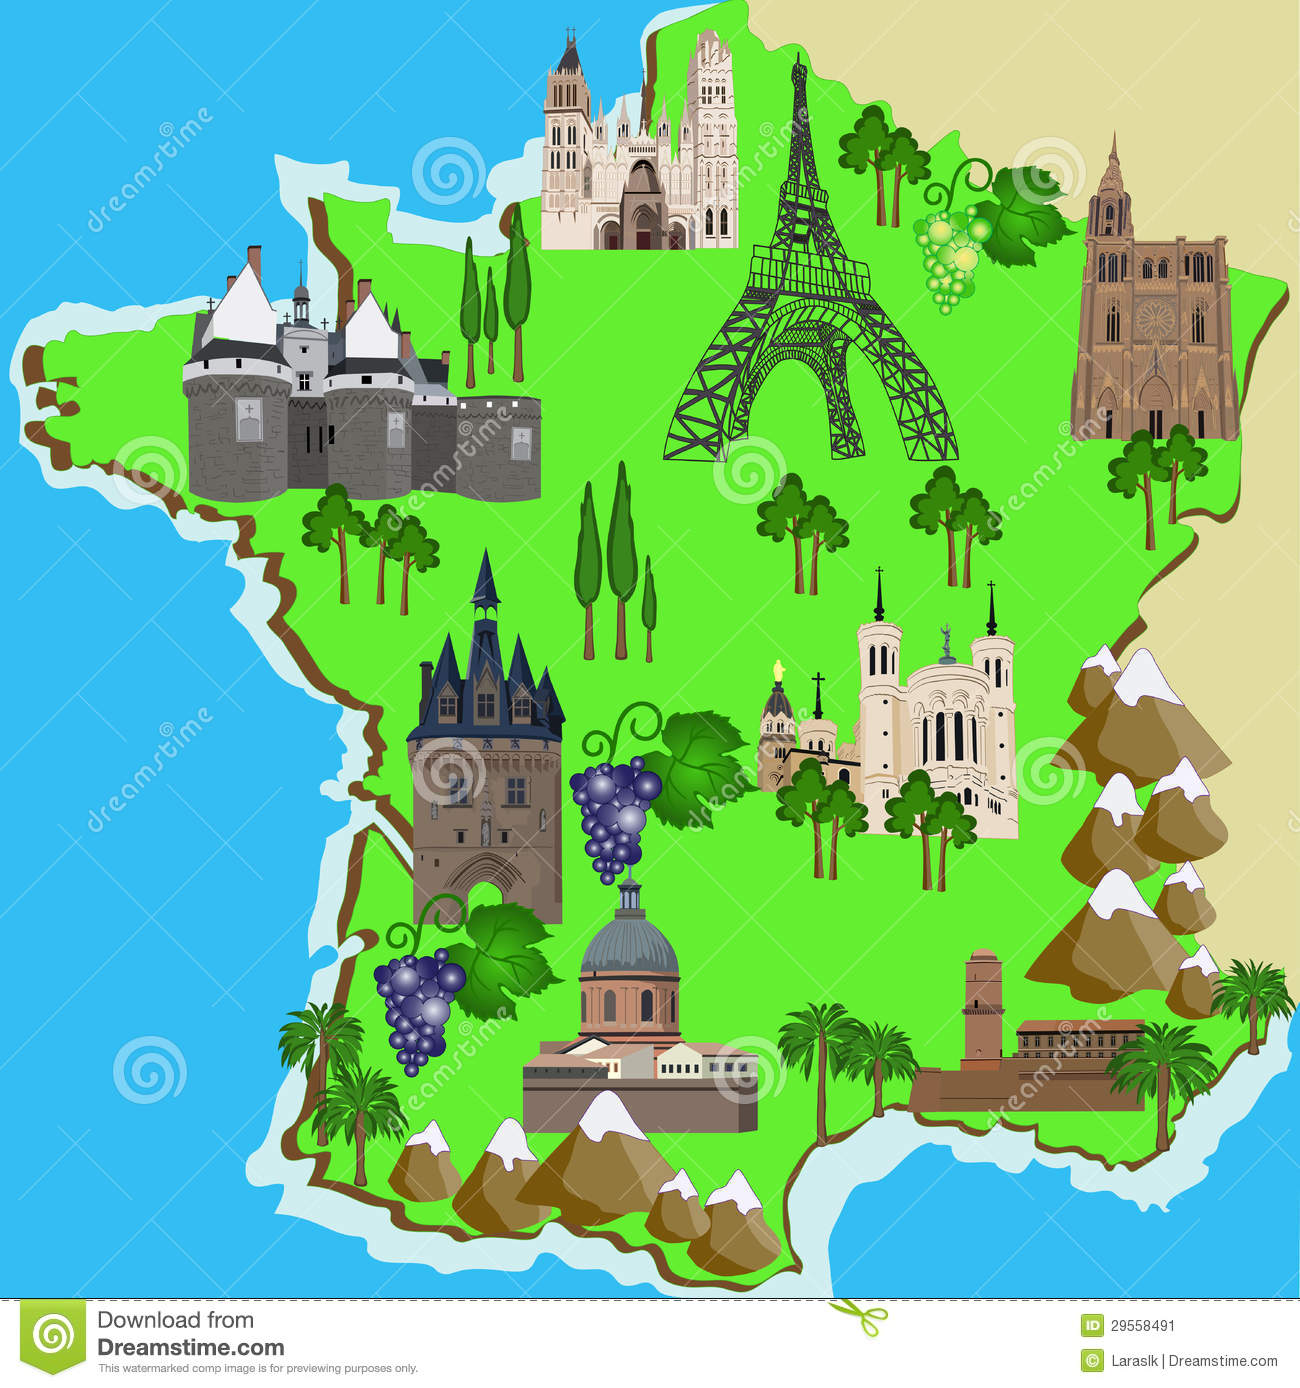 Mountain Map Of France.Map Of France Stock Vector Illustration Of Mountain 29558491